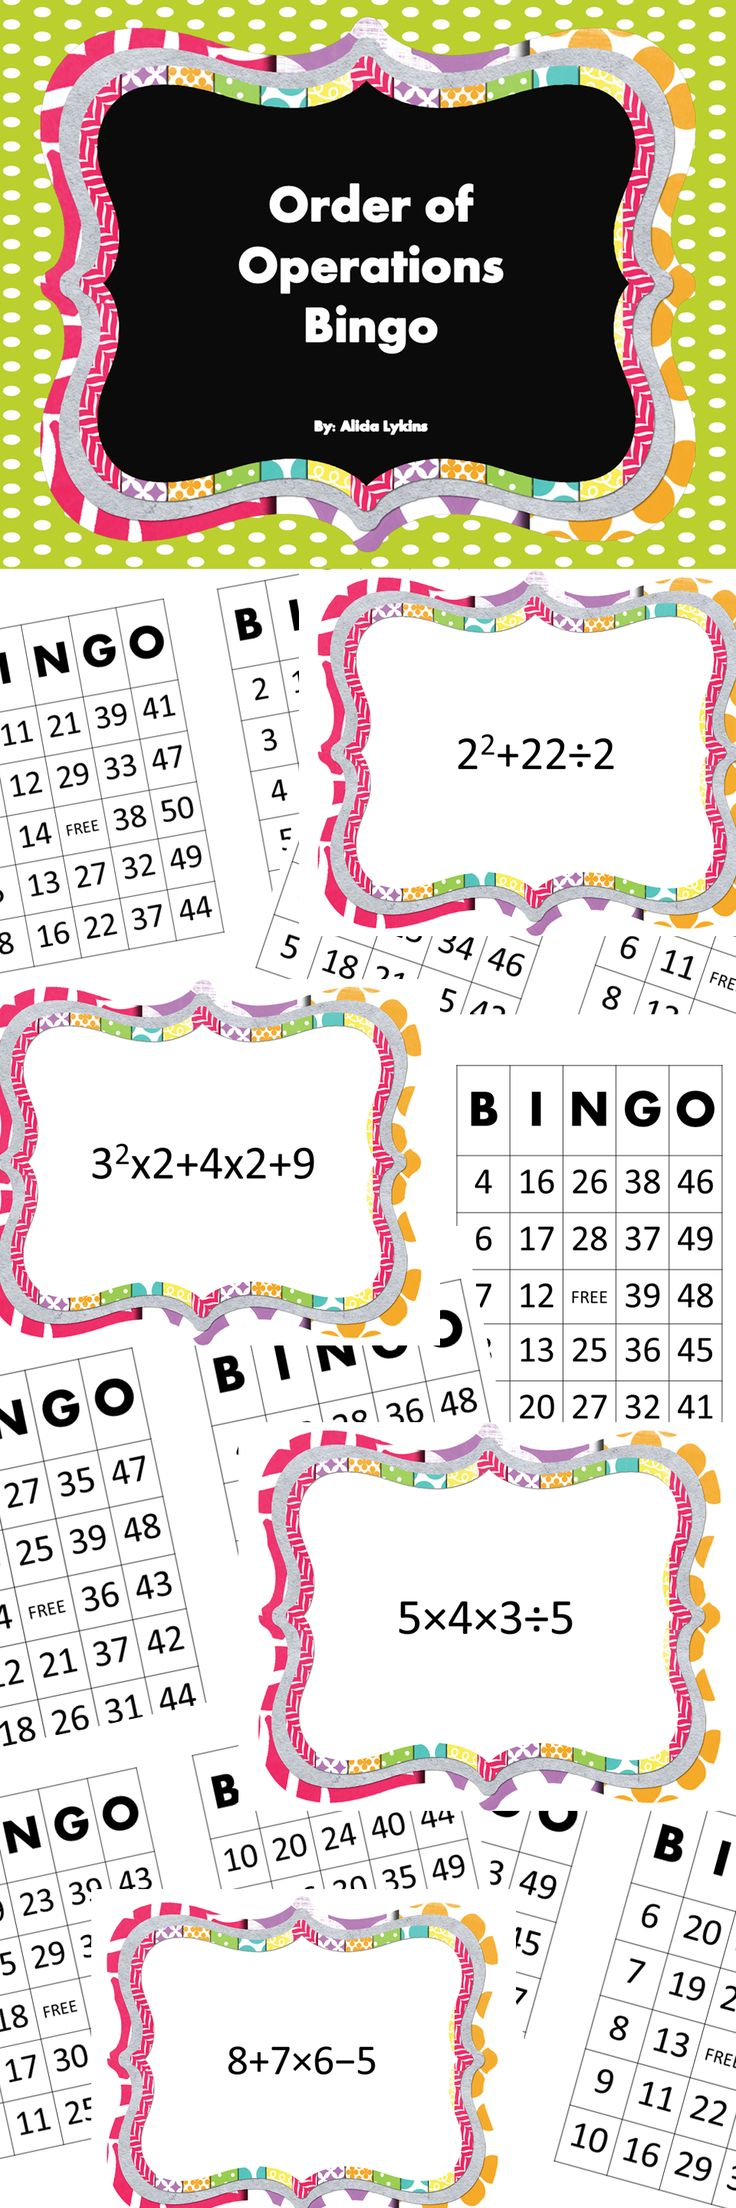 WOW!  50 order of operations expressions and 30 pre made bingo cards.  What I love about this is you can project the expressions up for the whole class so you can play all together as a group.  Or,  If you would rather, you can certainly print out the expressions and play at a center or small group.